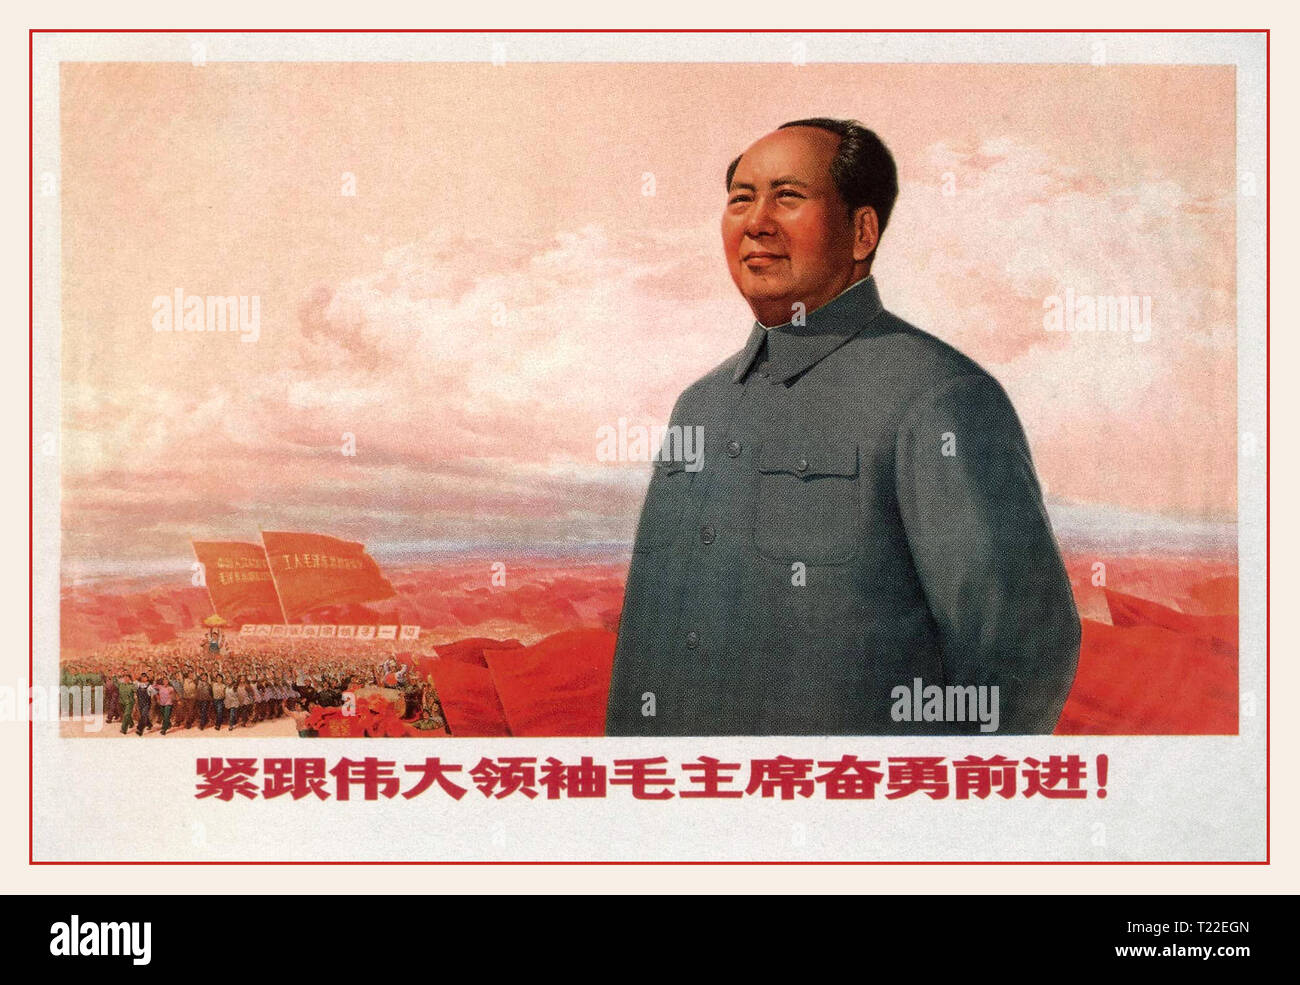 "Chairman Mao propaganda poster 1960s Chinese Chairman Mao propaganda poster titled ""Forging Ahead Courageously While Following the Great Leader"" Chairman Mao in 1969 designed by Shanghai Renmin Meishu Chubanshe Collective Work. The Cultural Revolution. Great Leader Chairman Mao Propaganda Poster 1969 - Stock Image"